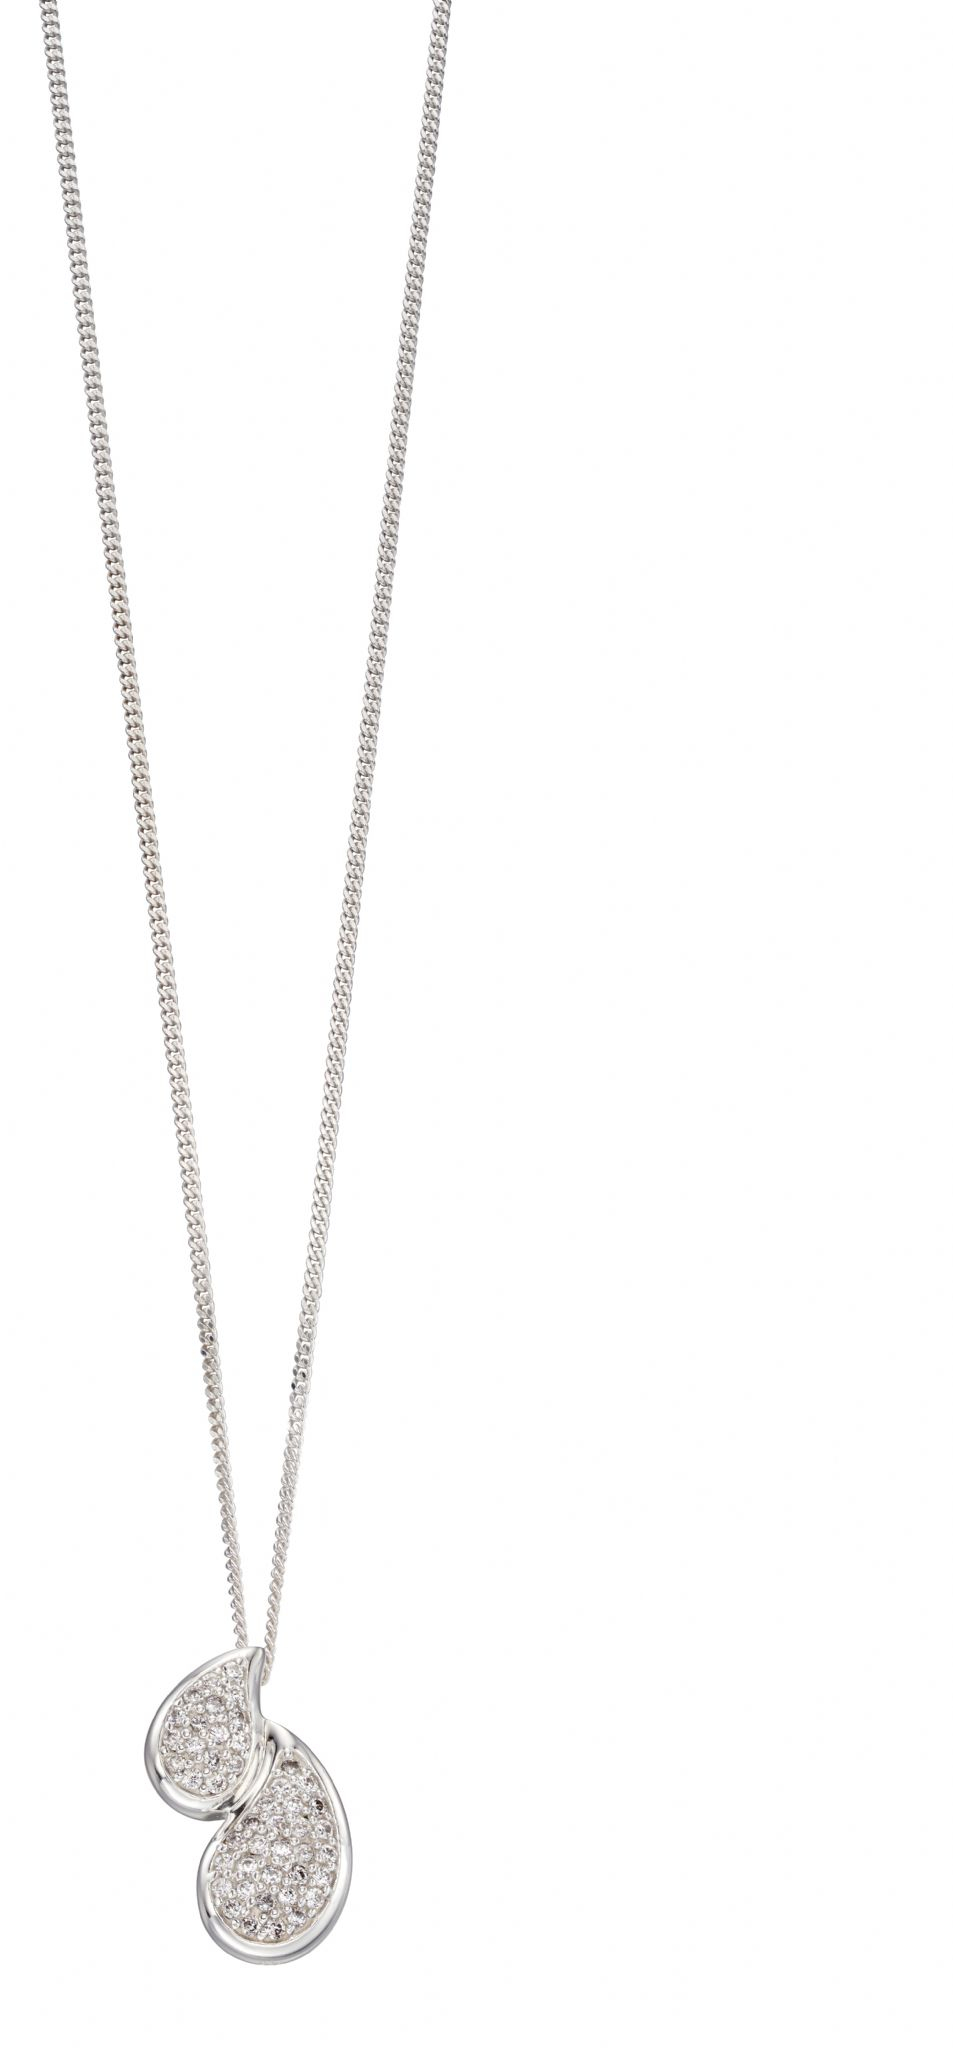 Elements Silver Double Pave Teardrop Pendant | The Silver Shop Within Most Popular Pavé Locket Element Necklaces (Gallery 2 of 25)